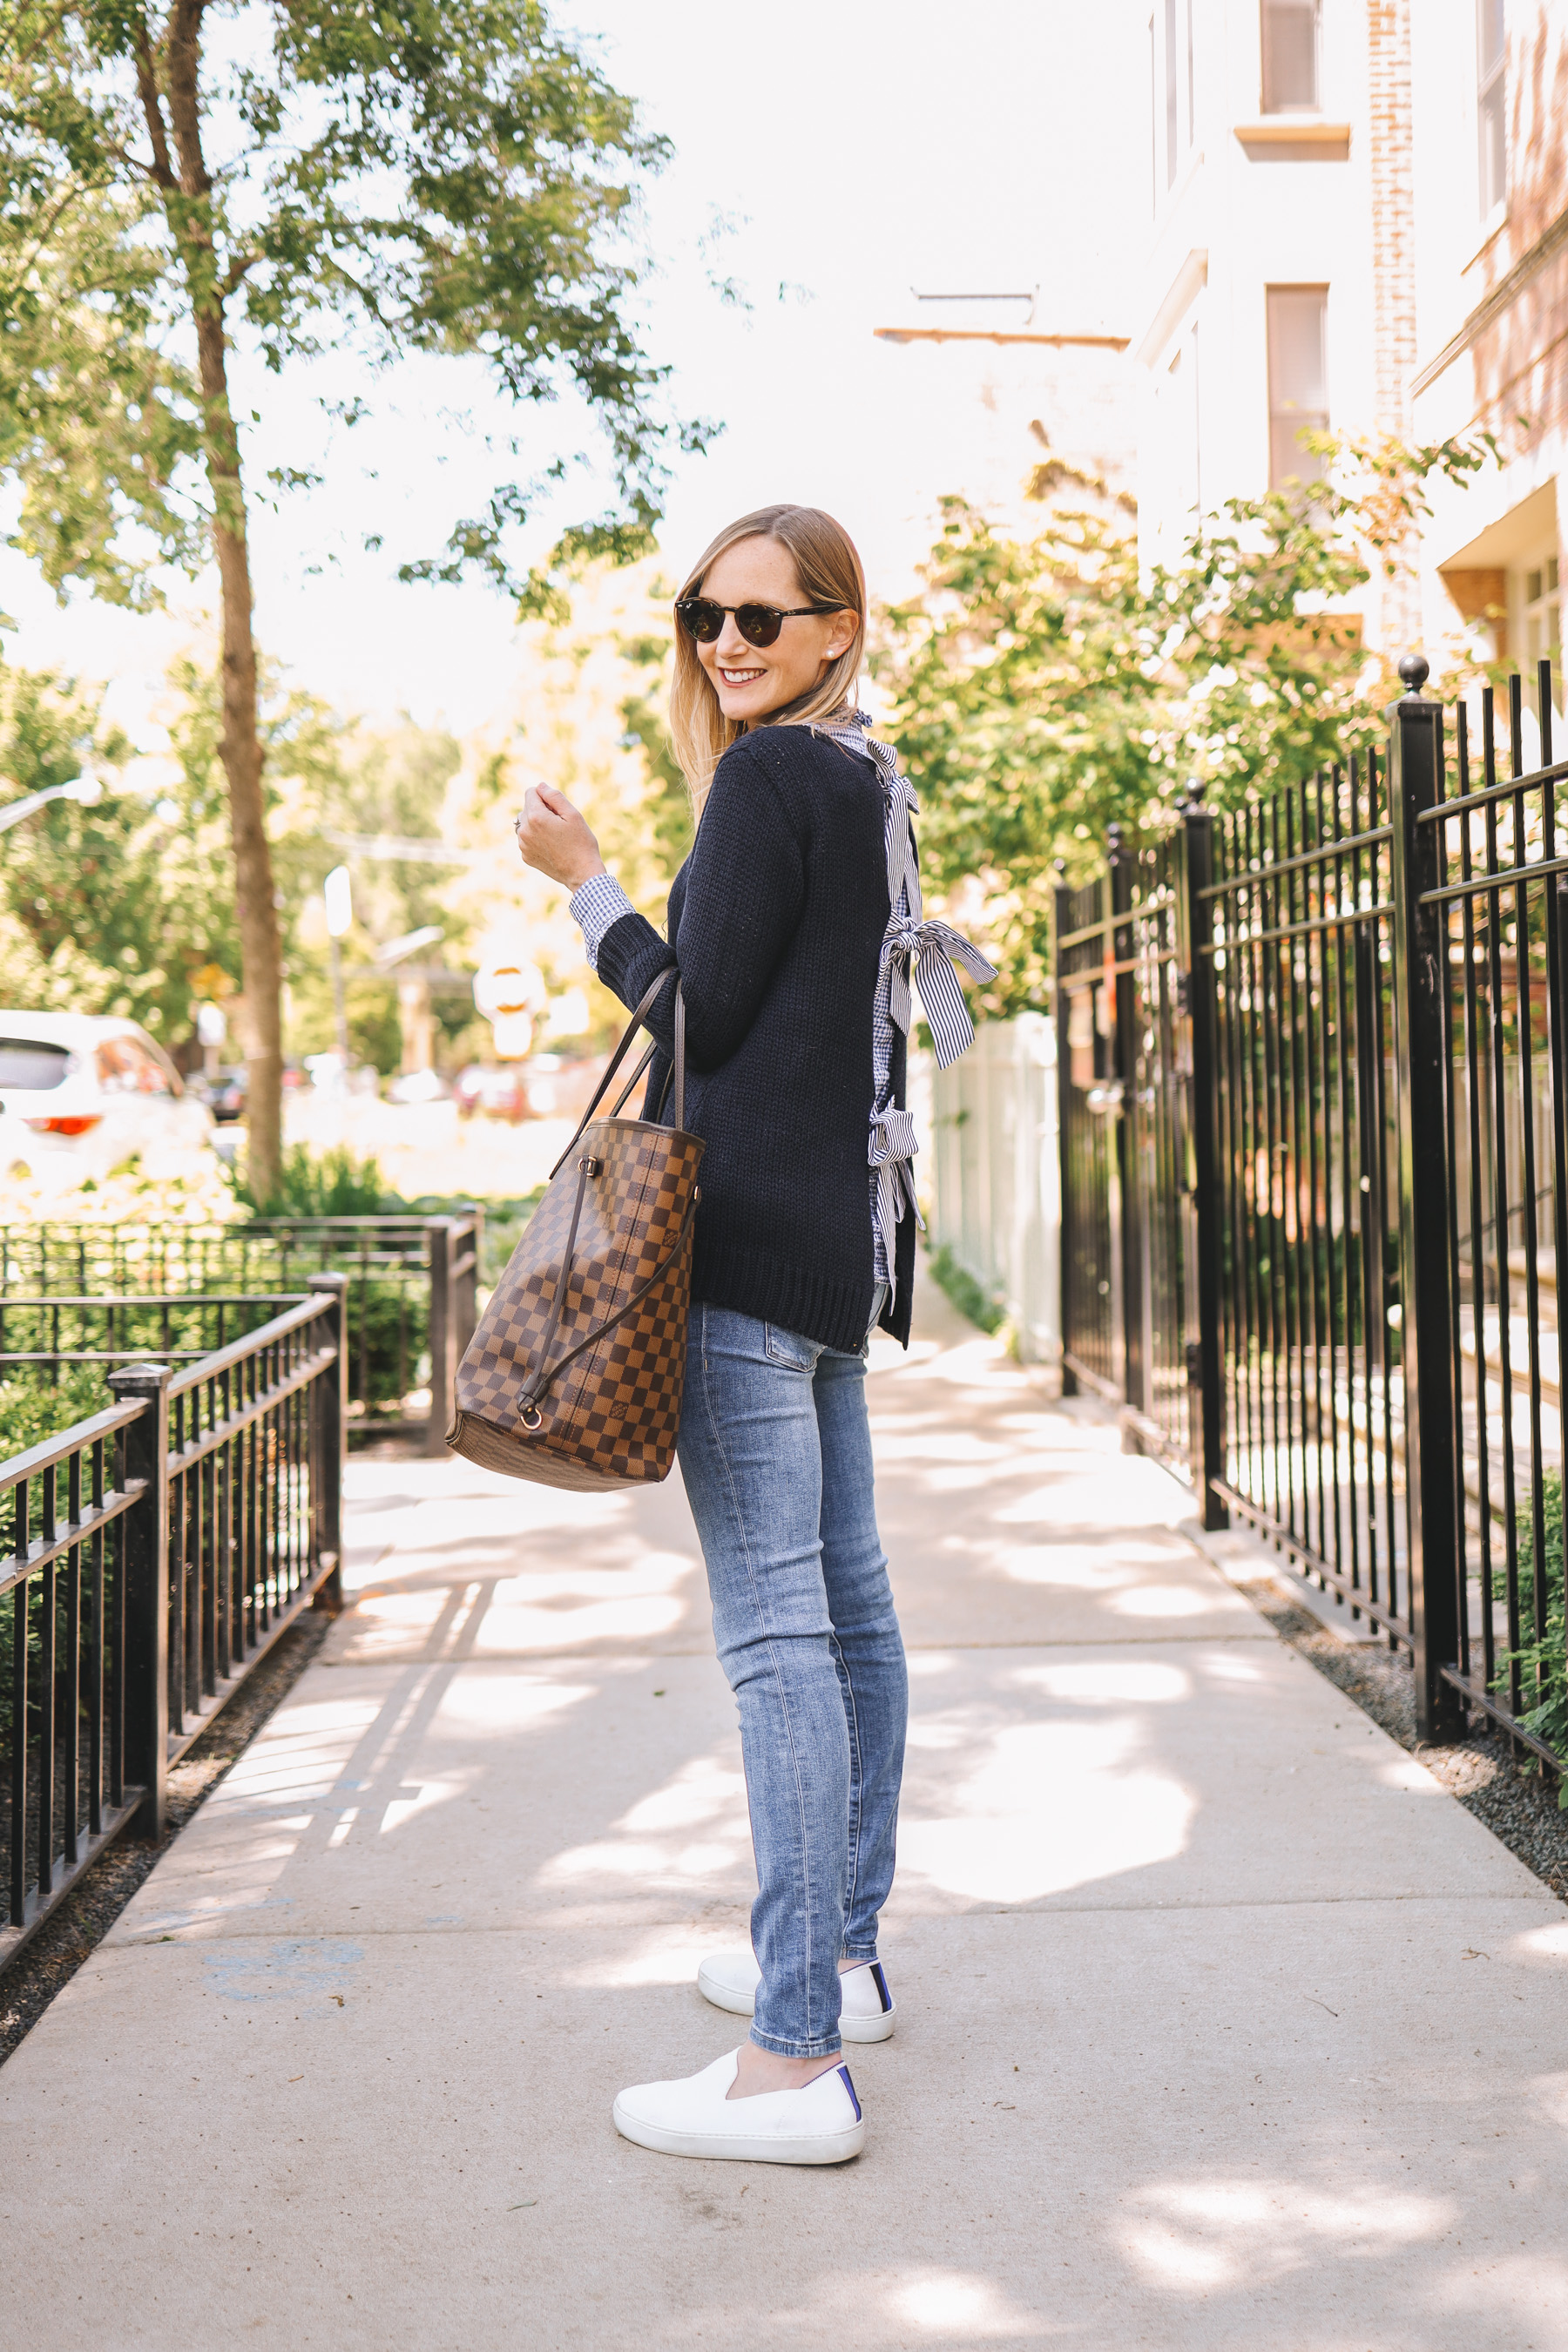 Kely's outfit details: Maternity Jeans / Rothy's Washable Sneakers / Tuckernuck Bow Sweater / J.McLaughlin Gingham Button-Down / Louis Vuitton Neverfull GM /  Ray-Ban Sunglasses